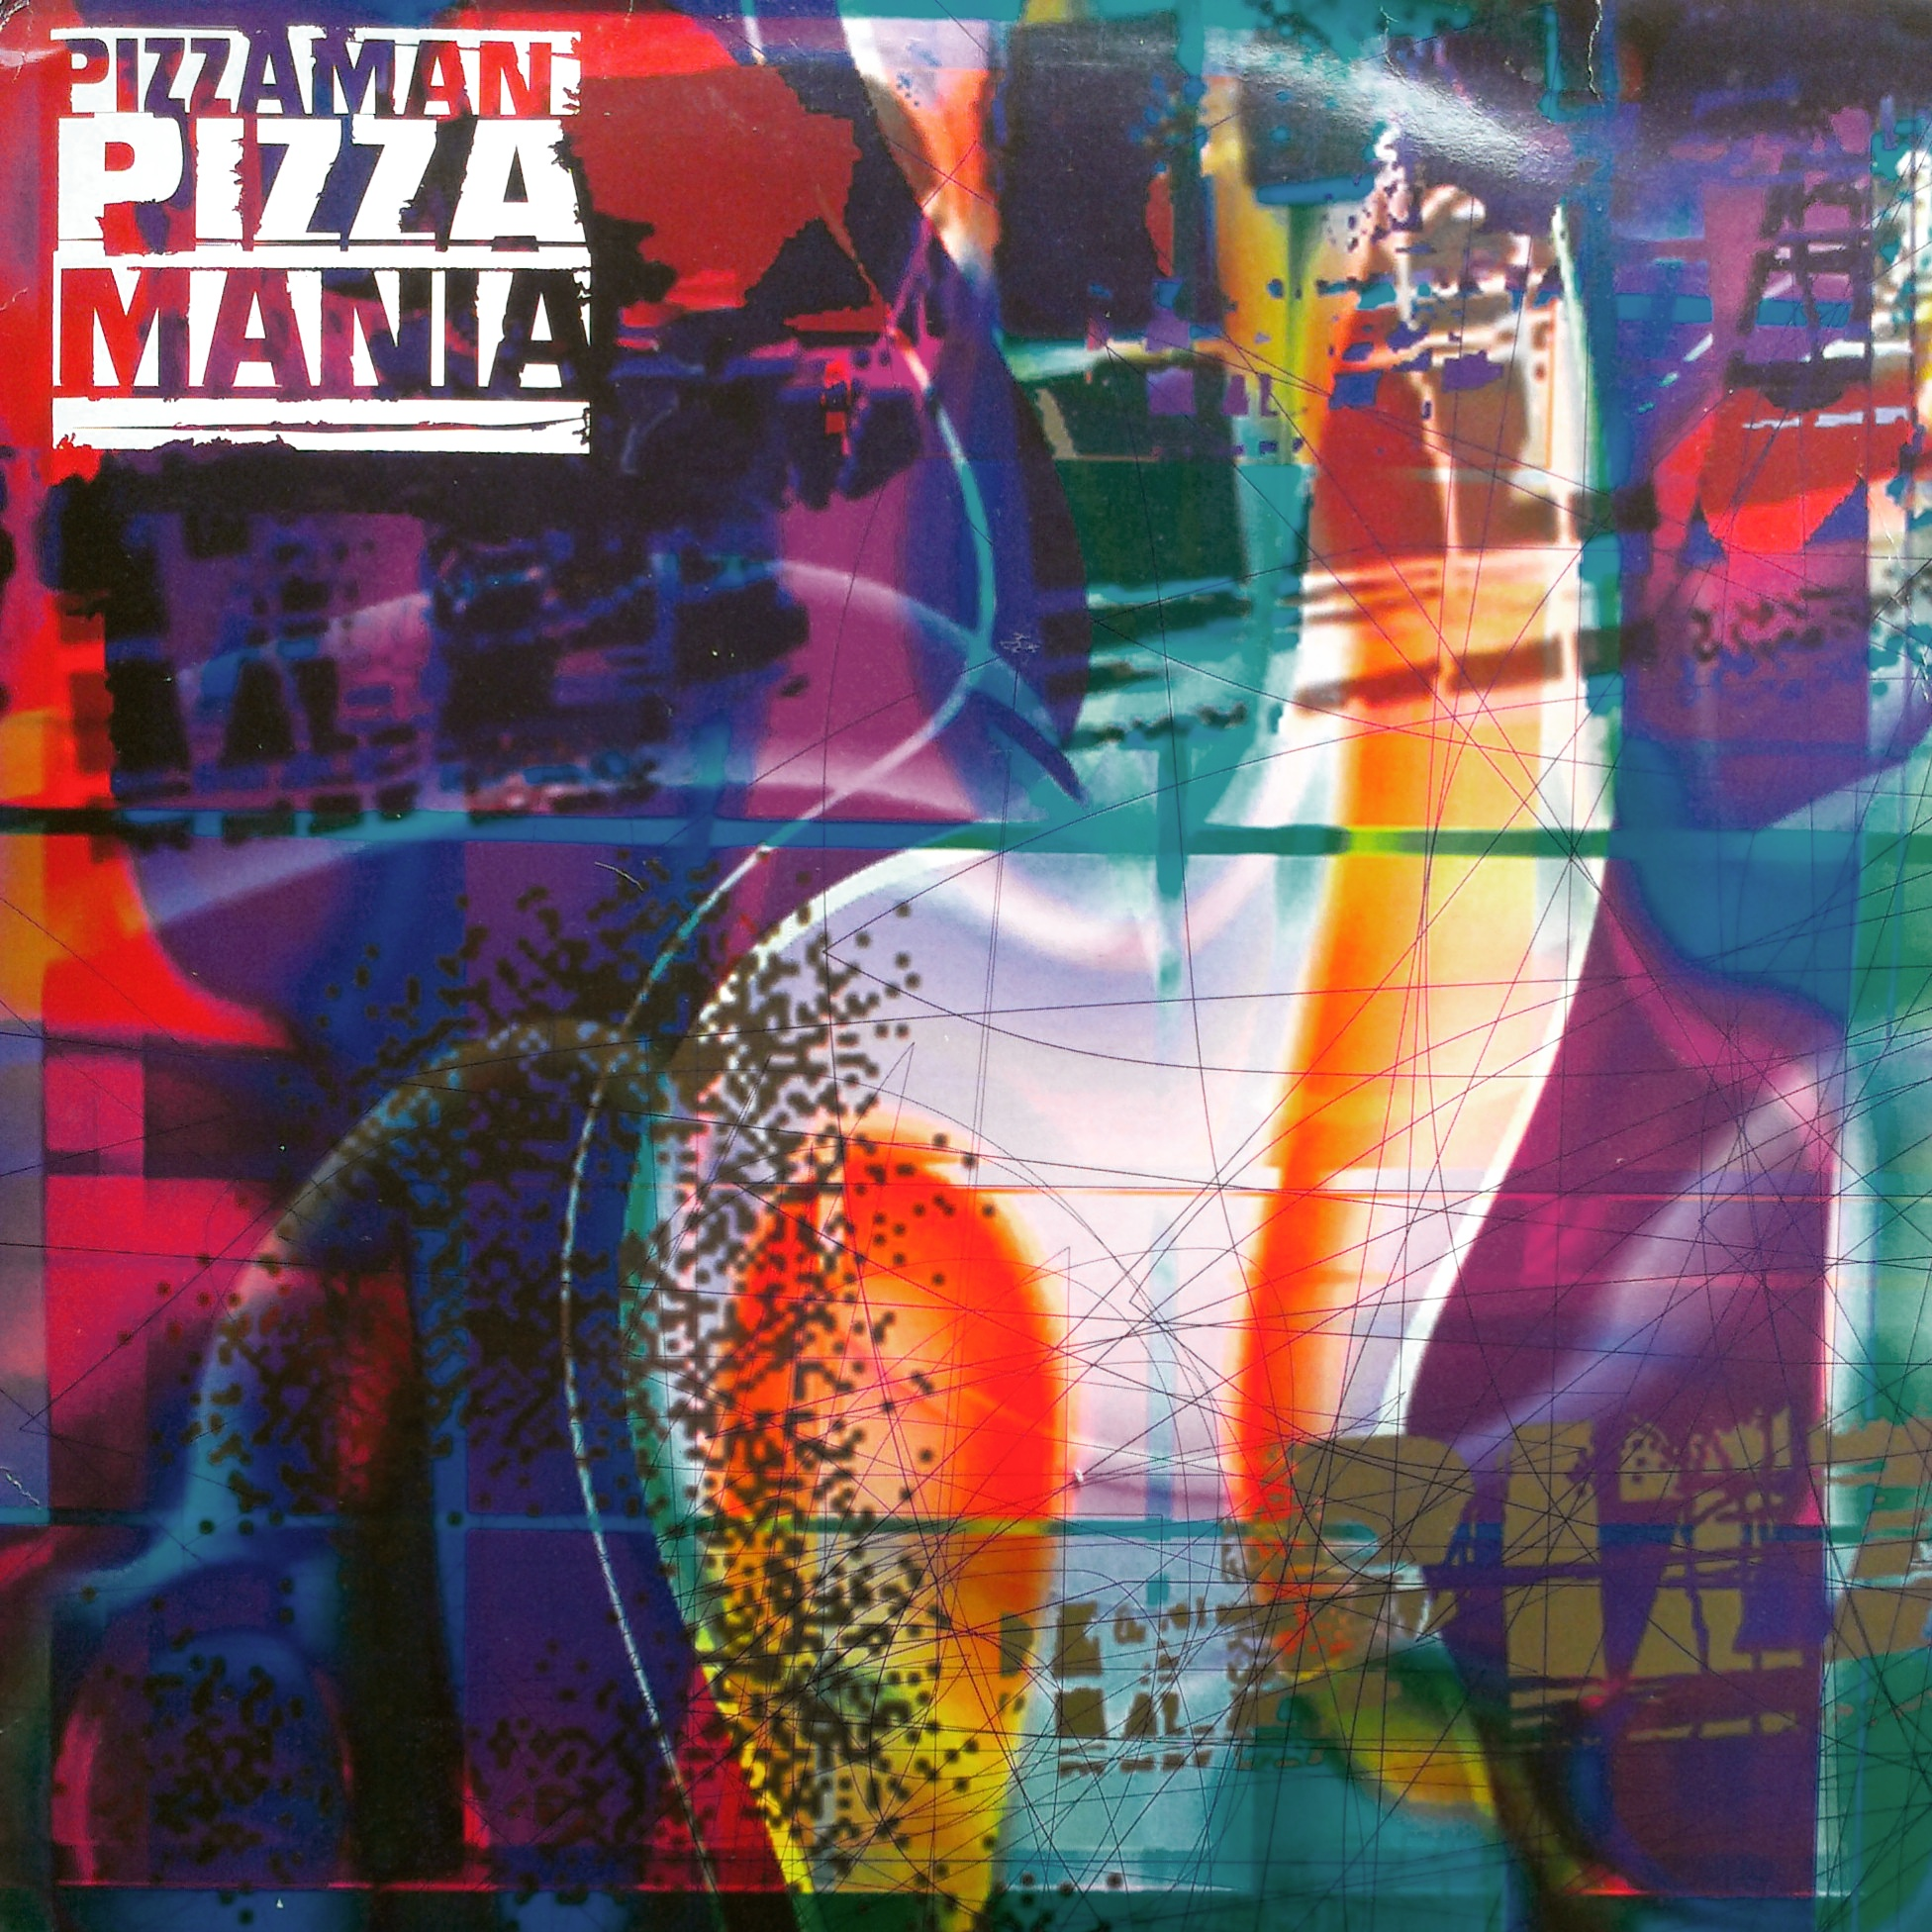 House Techno Trance 2xlp Pizzaman Pizzamania